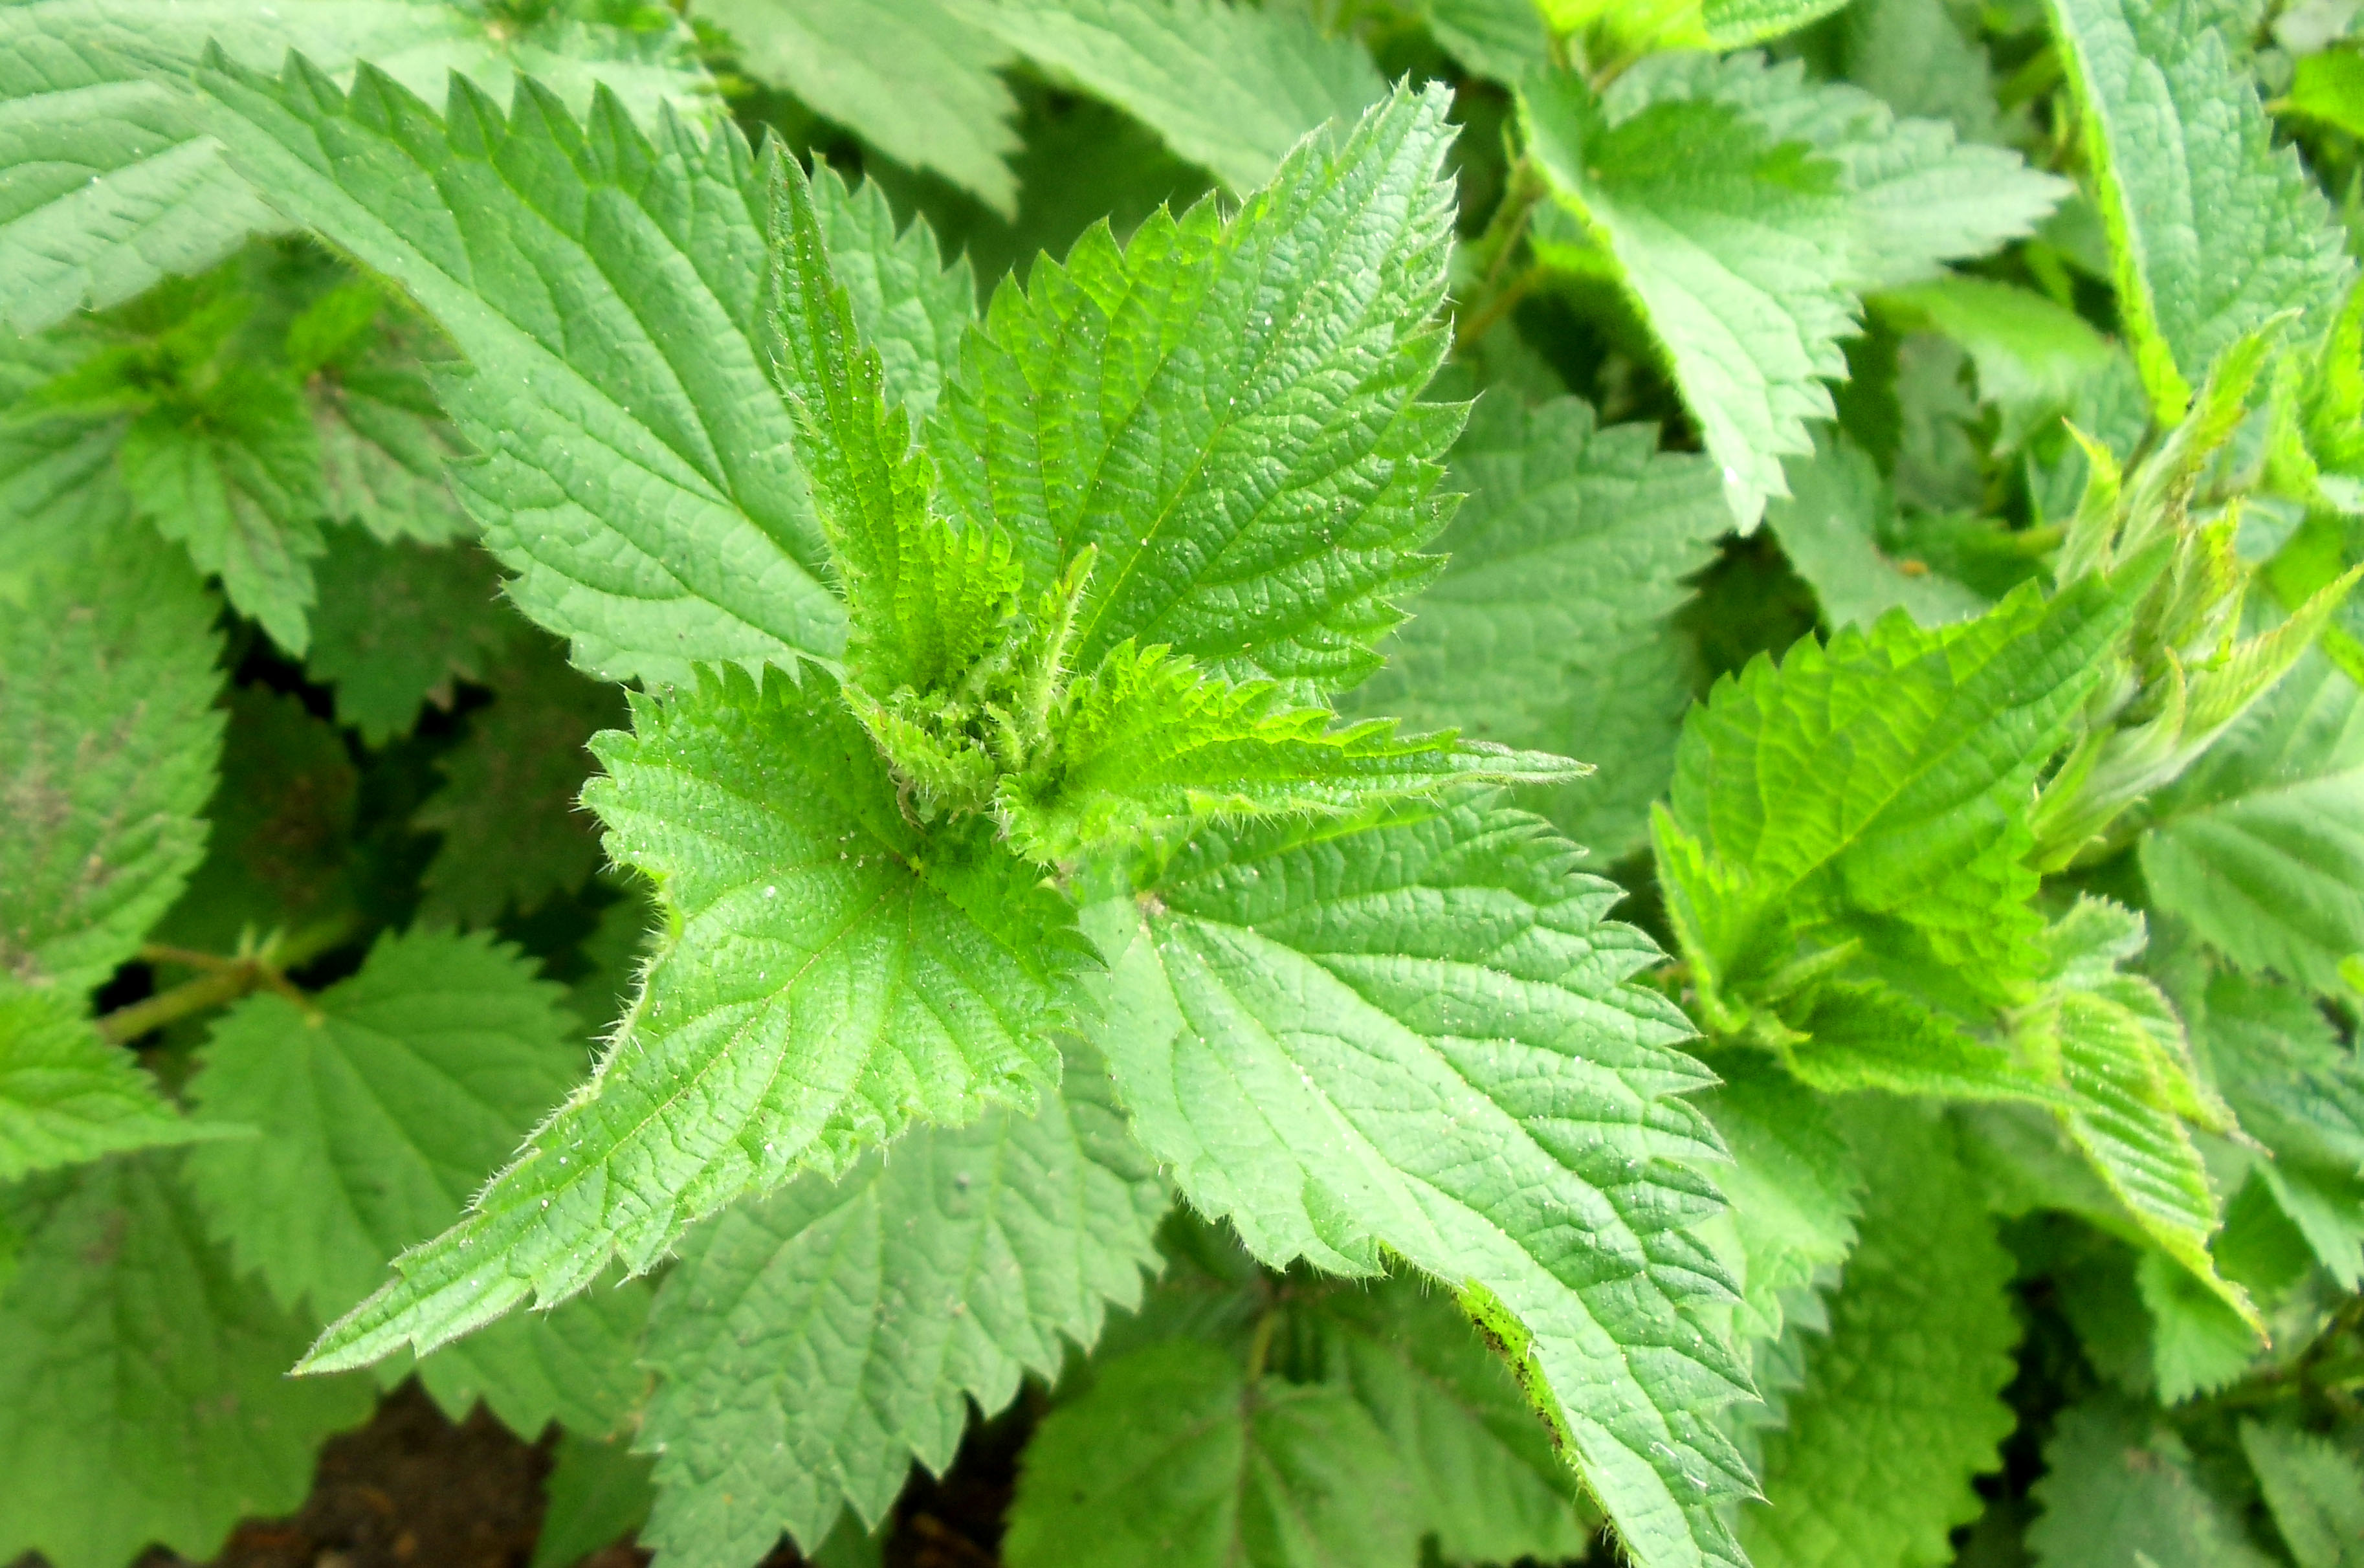 Nettle Me This! | Forageporage's Blog